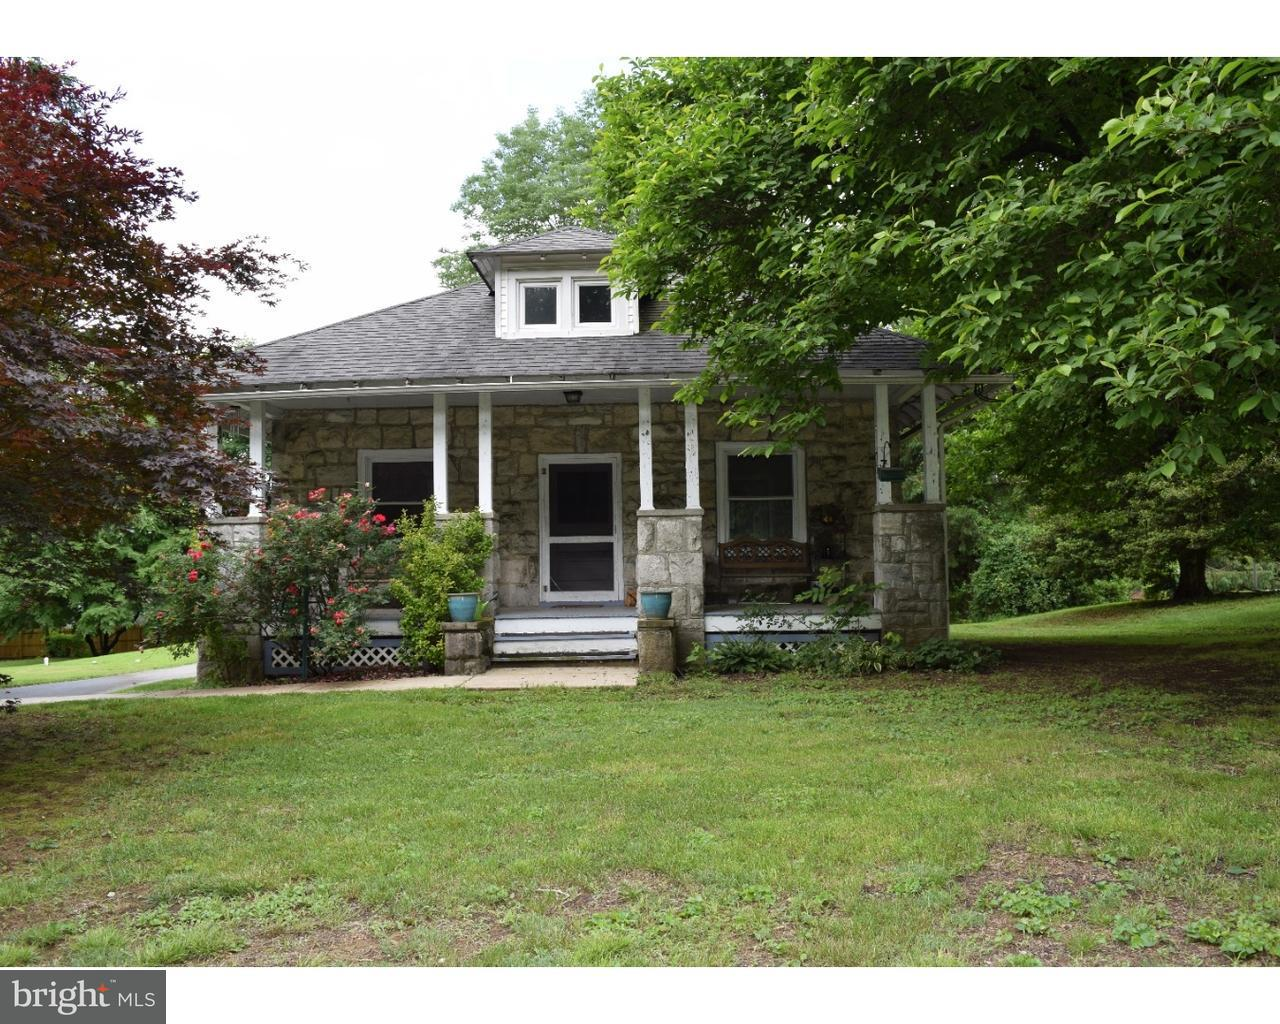 379 VALLEYBROOK RD, CHESTER HEIGHTS - Listed at $390,000, CHESTER HEIGHTS